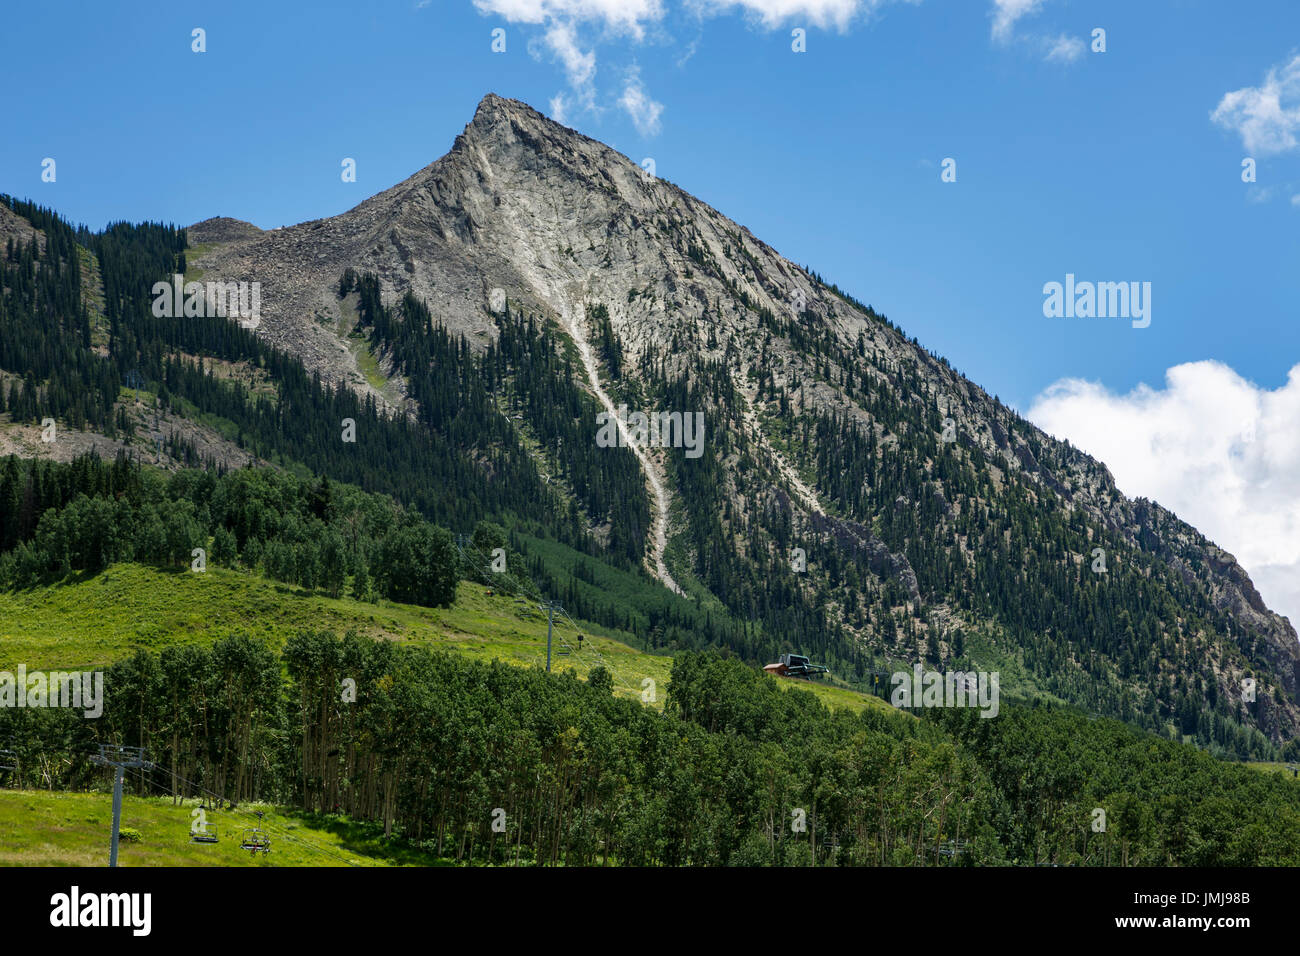 Mount Crested Butte (12,162 ft.), Crested Butte, Colorado USA - Stock Image